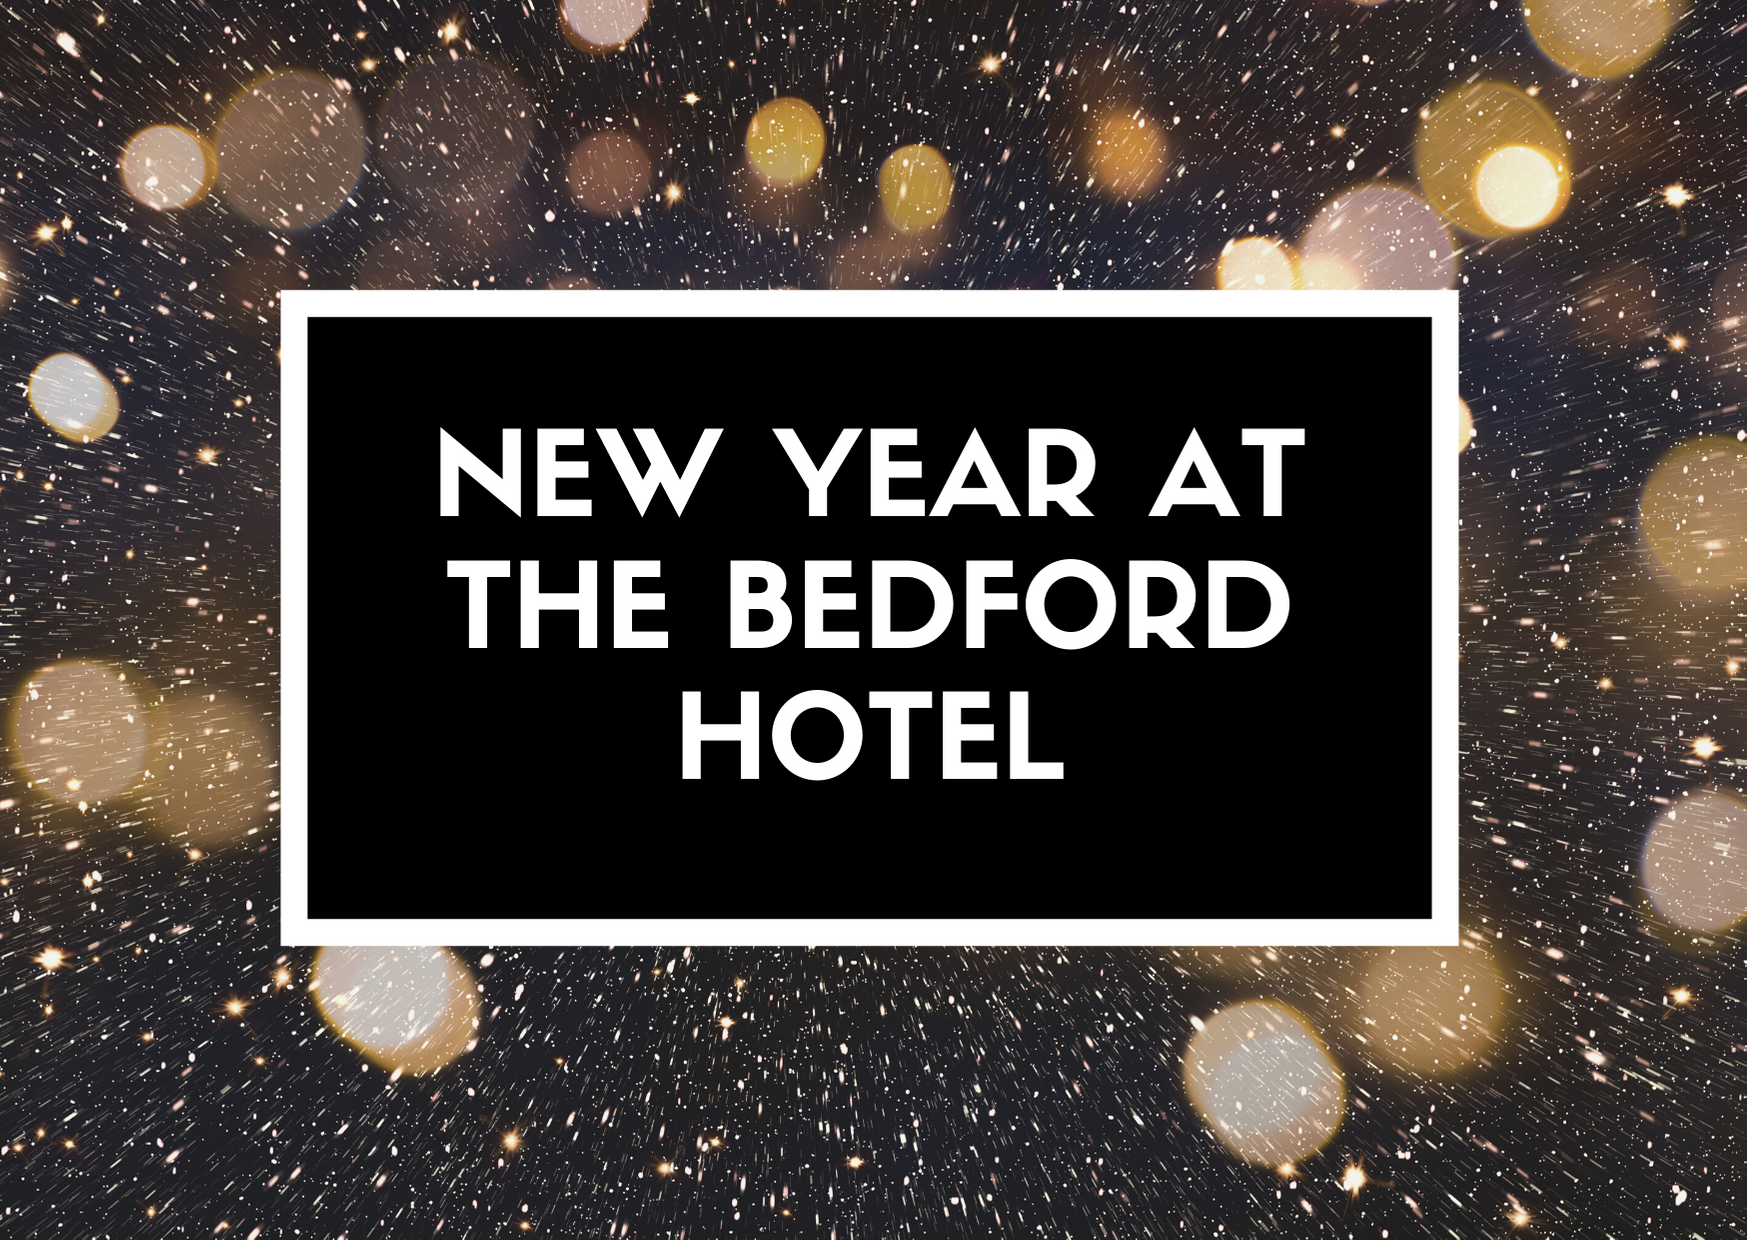 The Bedford Hotel Sidmouth